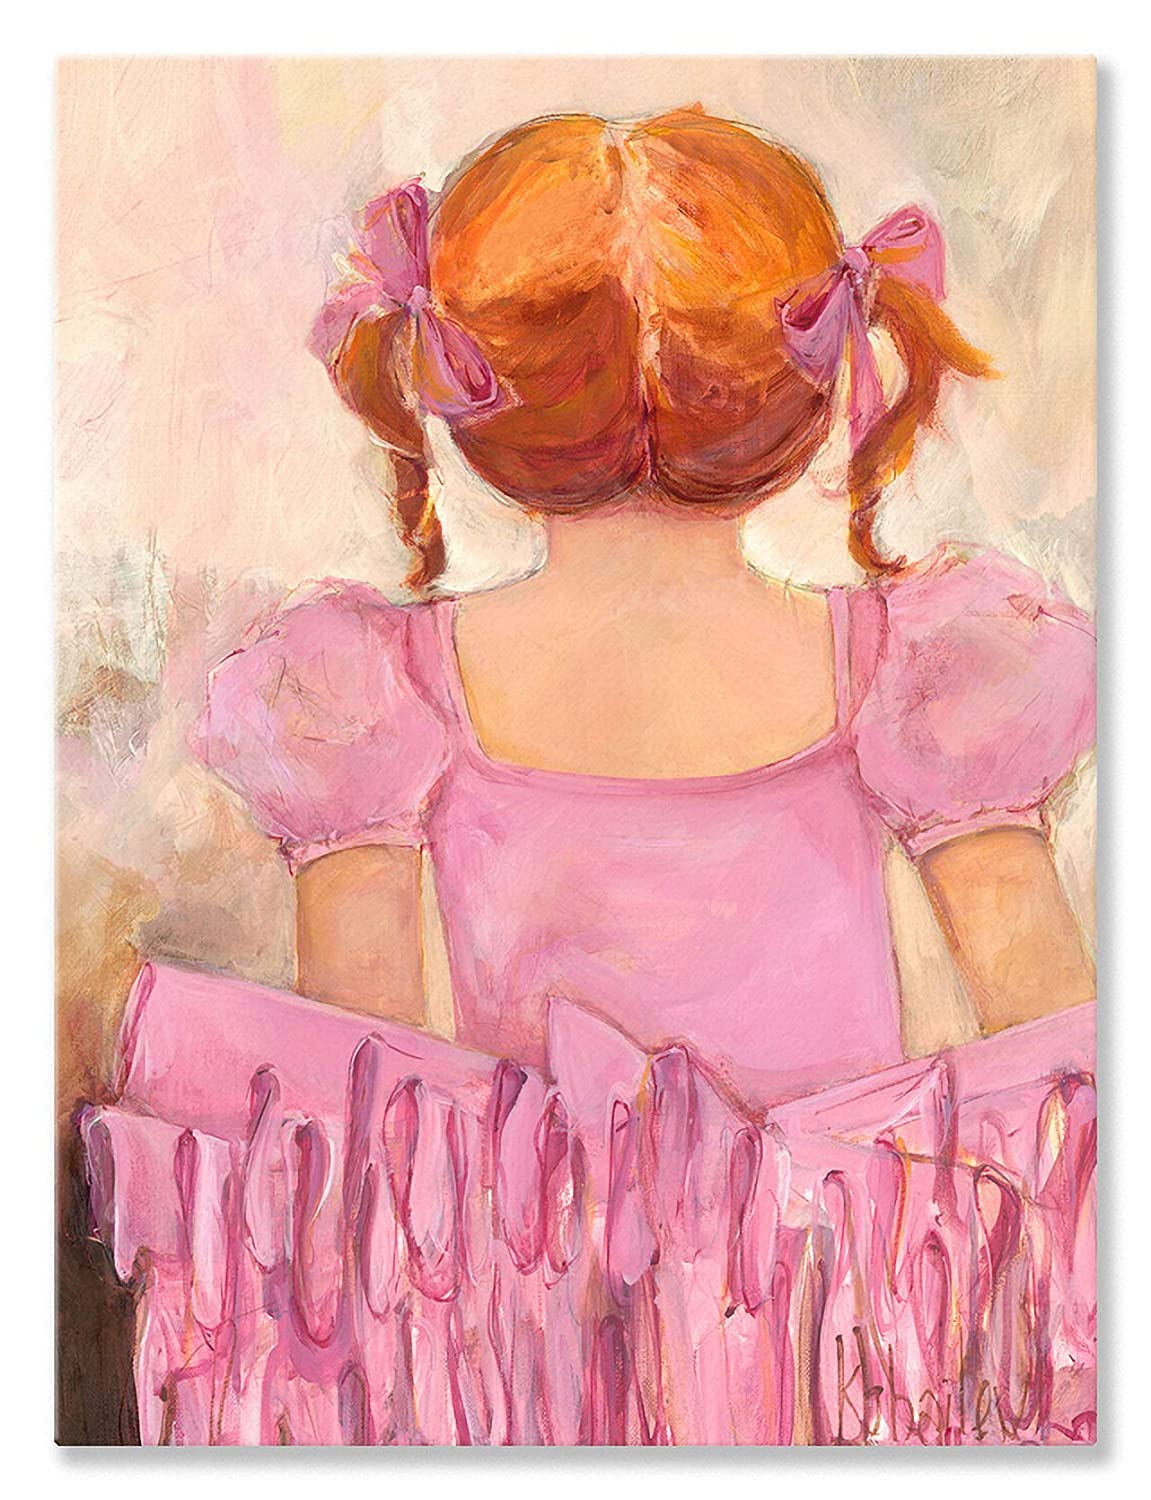 18 by 24Inch Oopsy Daisy Angelic Ballerina Red Hair Stretched Canvas Wall Art by Kristina Bass Bailey, 18 by 24Inch